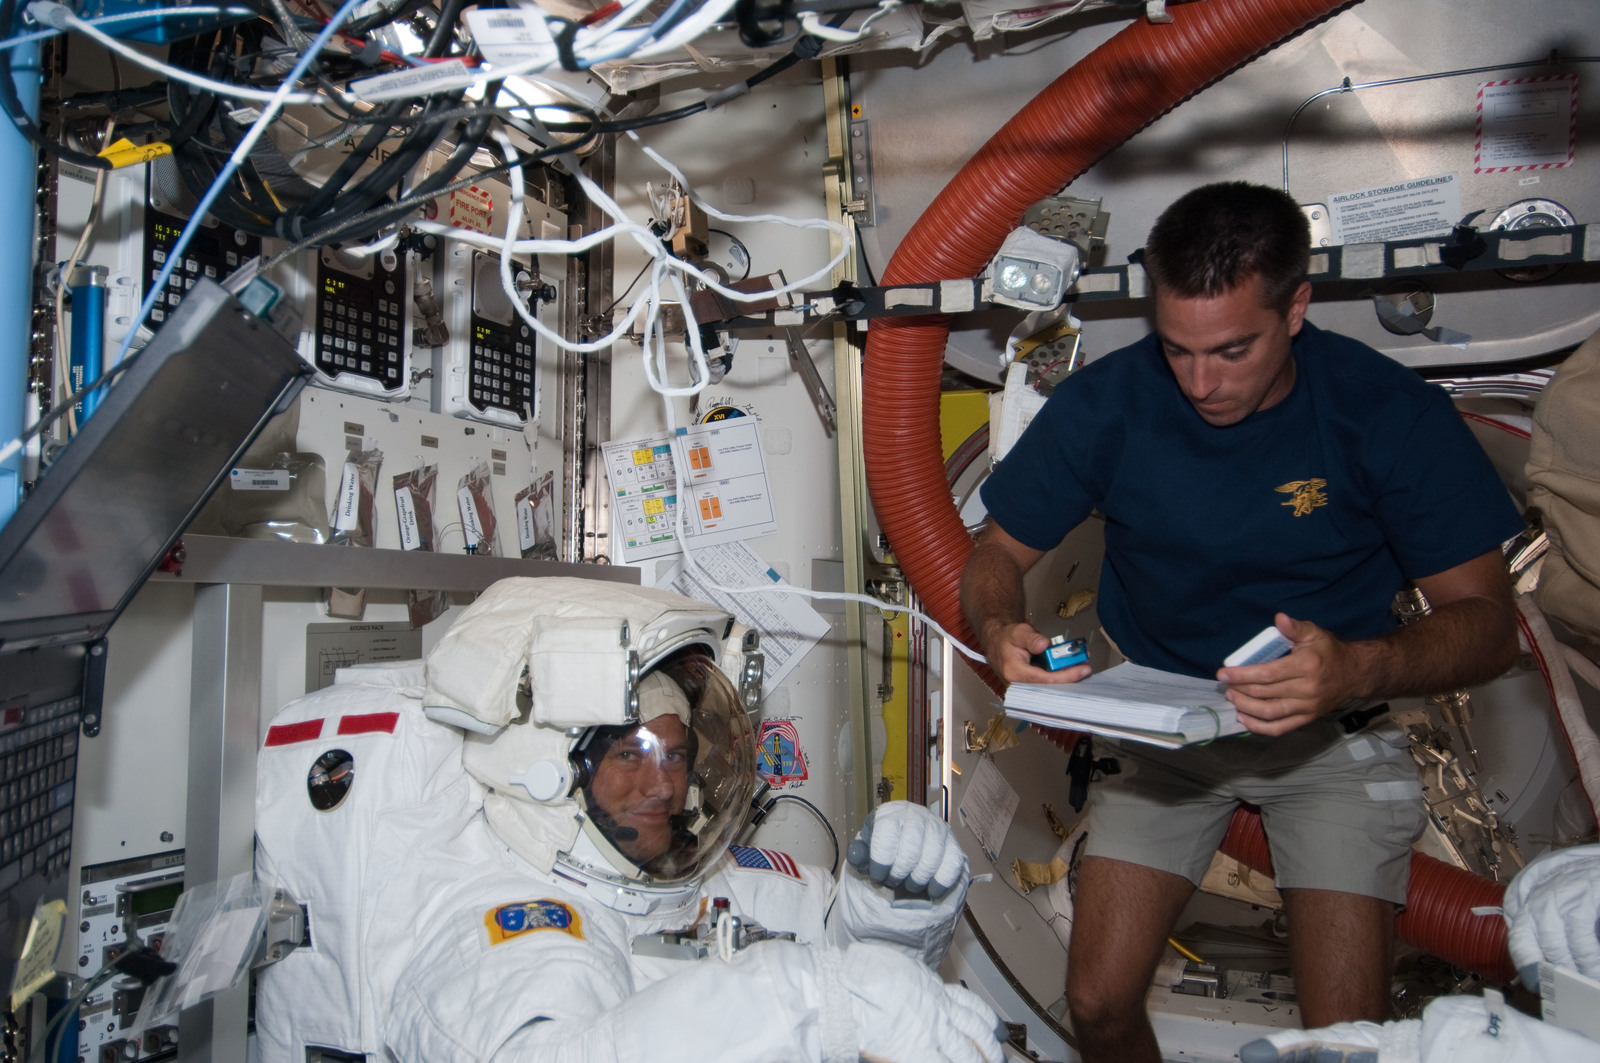 S127E007024 - STS-127 - Marshburn in the A/L during STS-127 / Expedition 20 Joint Operations